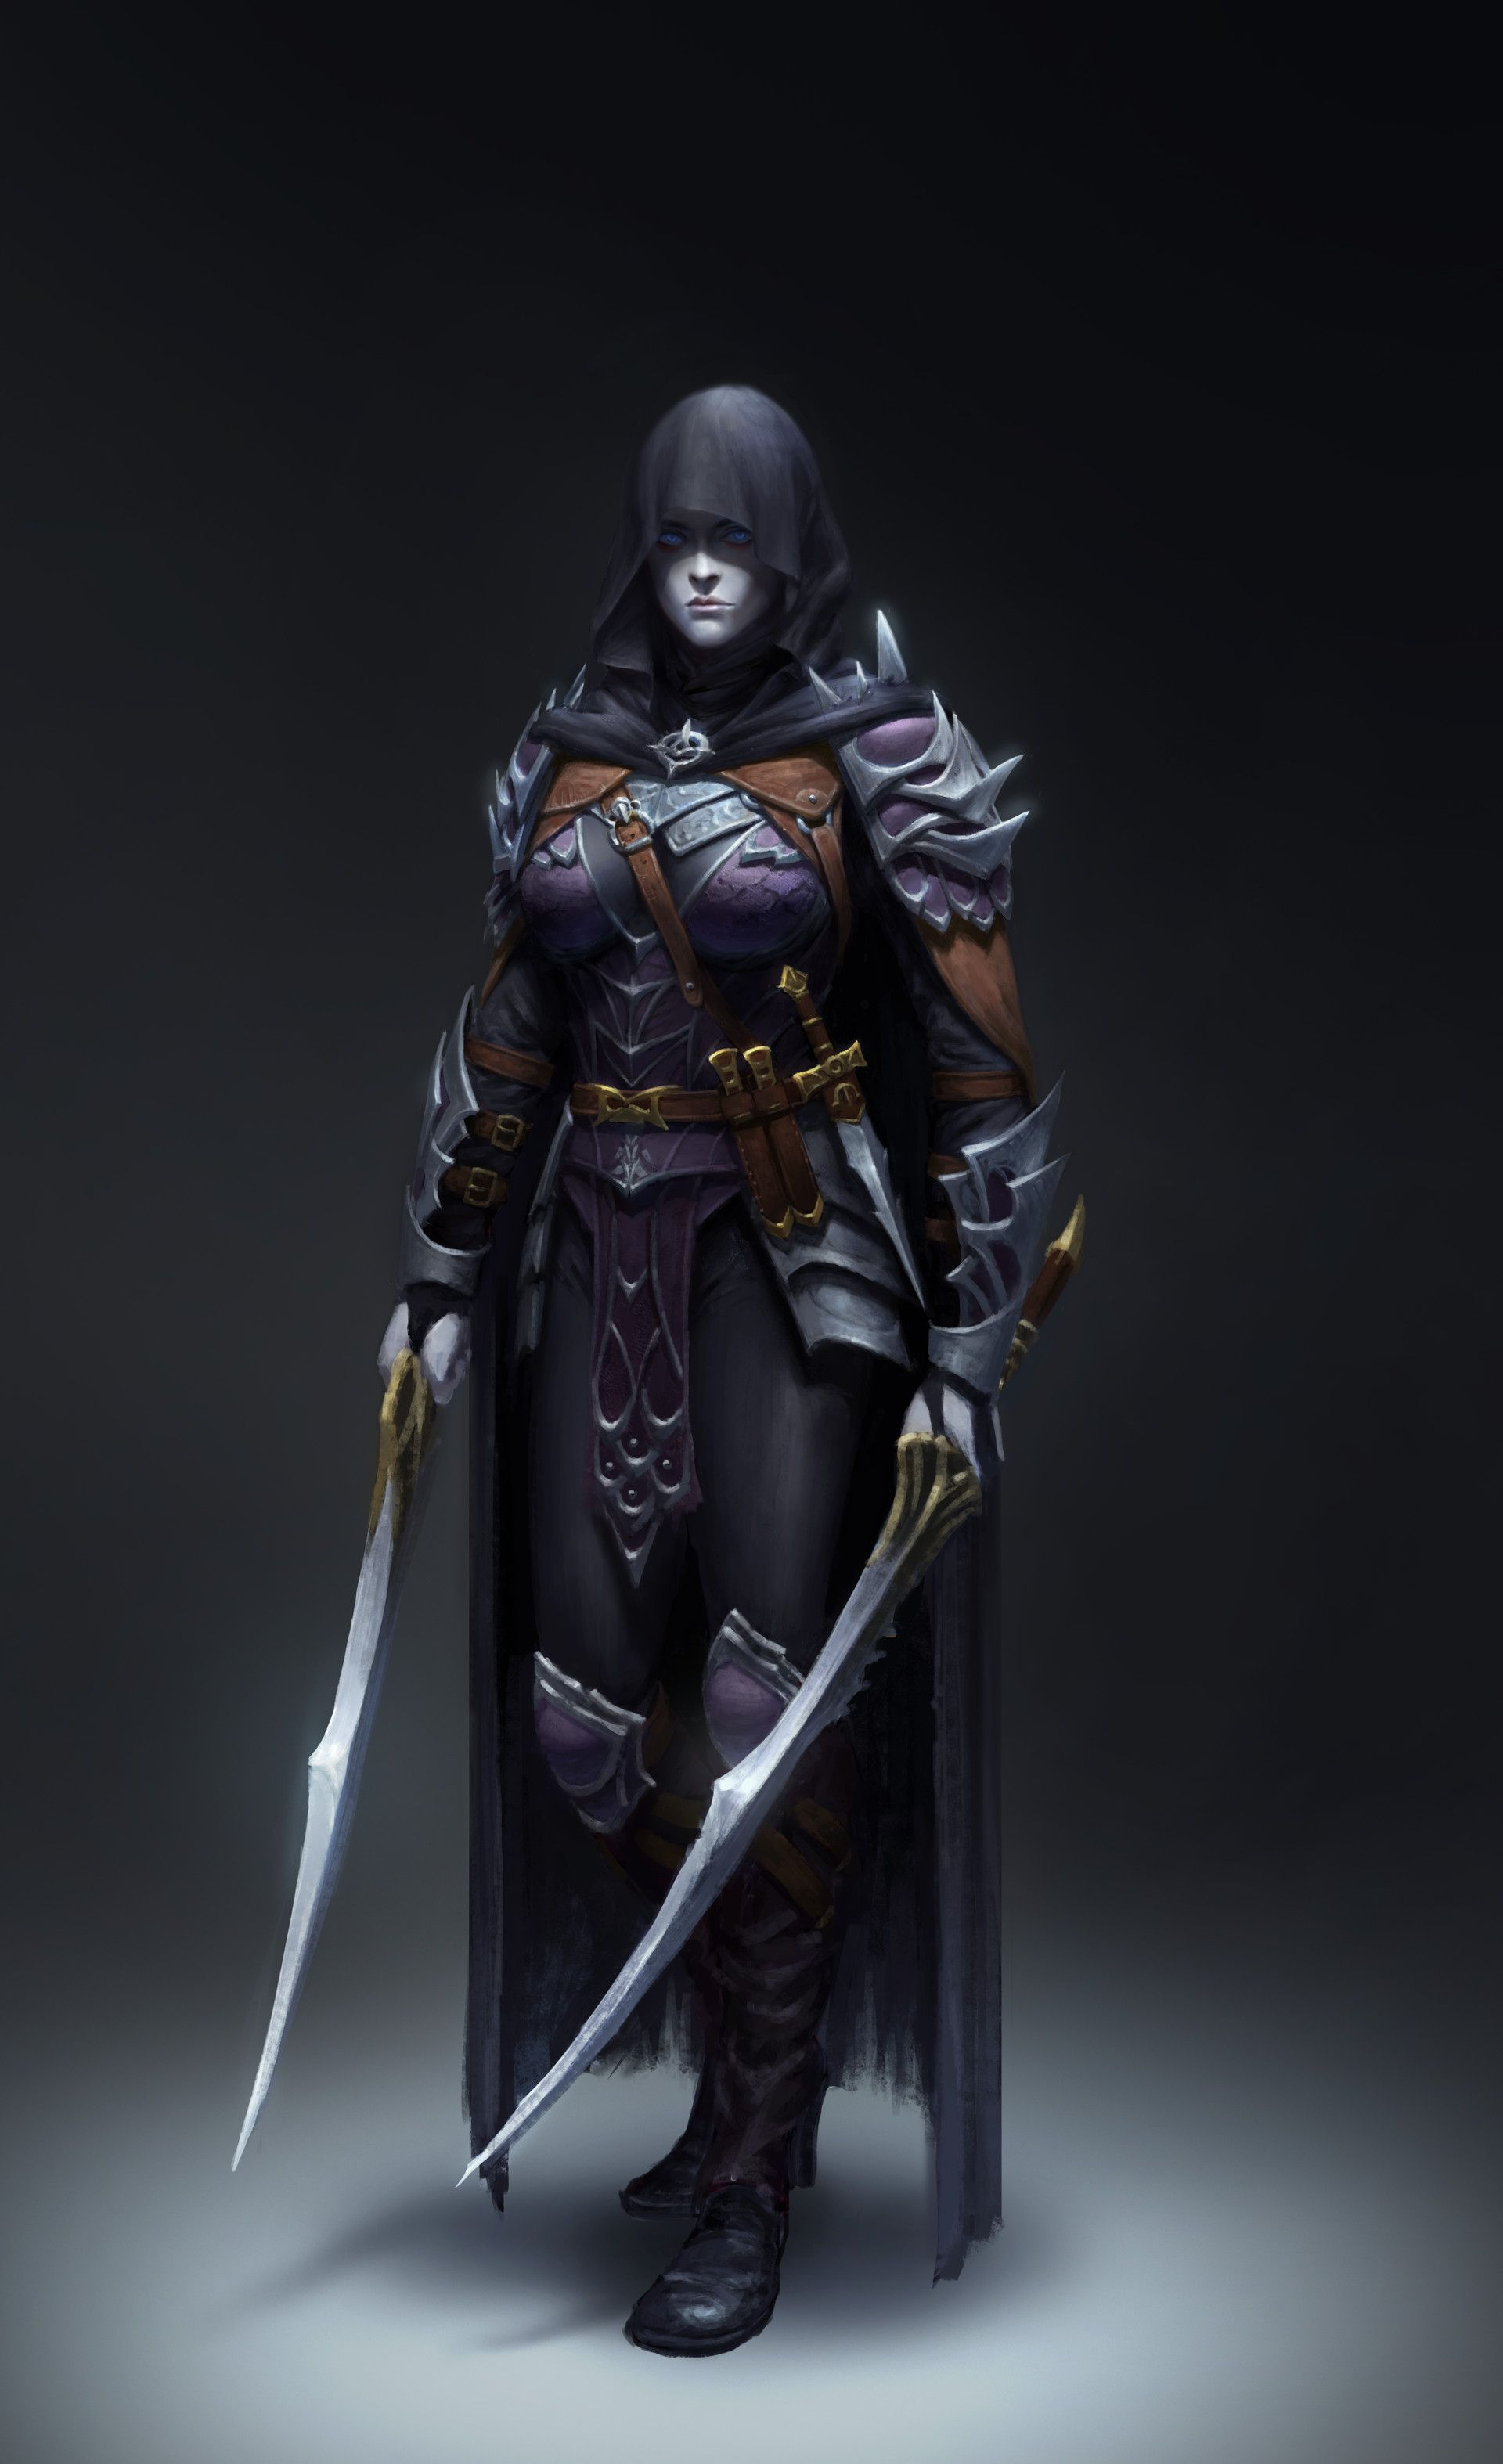 ArtStation - Dark Assassin, Yoon Seseon